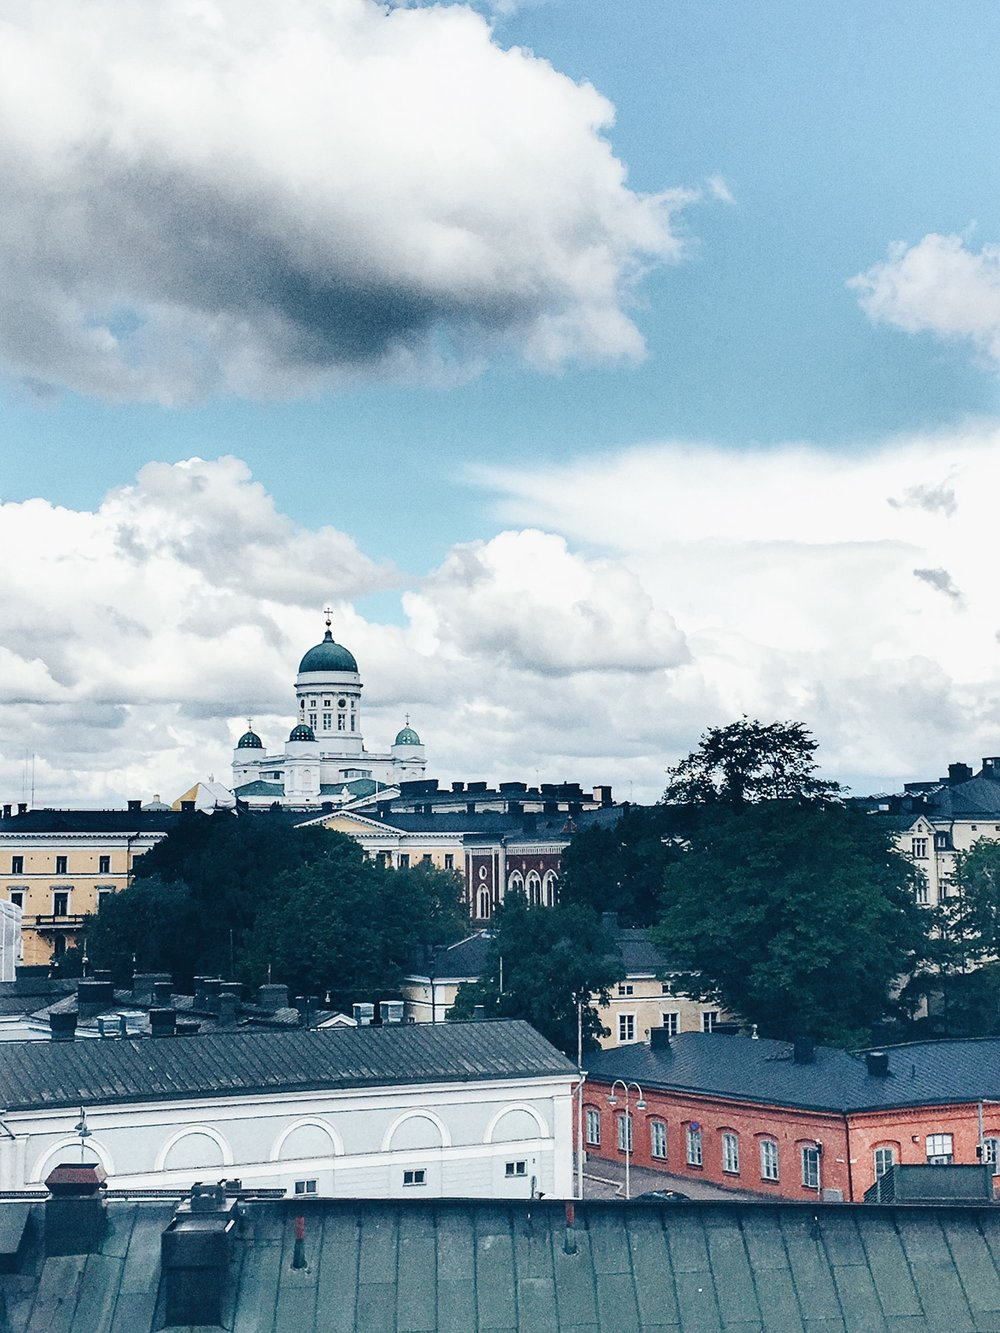 Helsinki Cathedral as seen from Uspenski Cathedral (Helsinki, Finland)